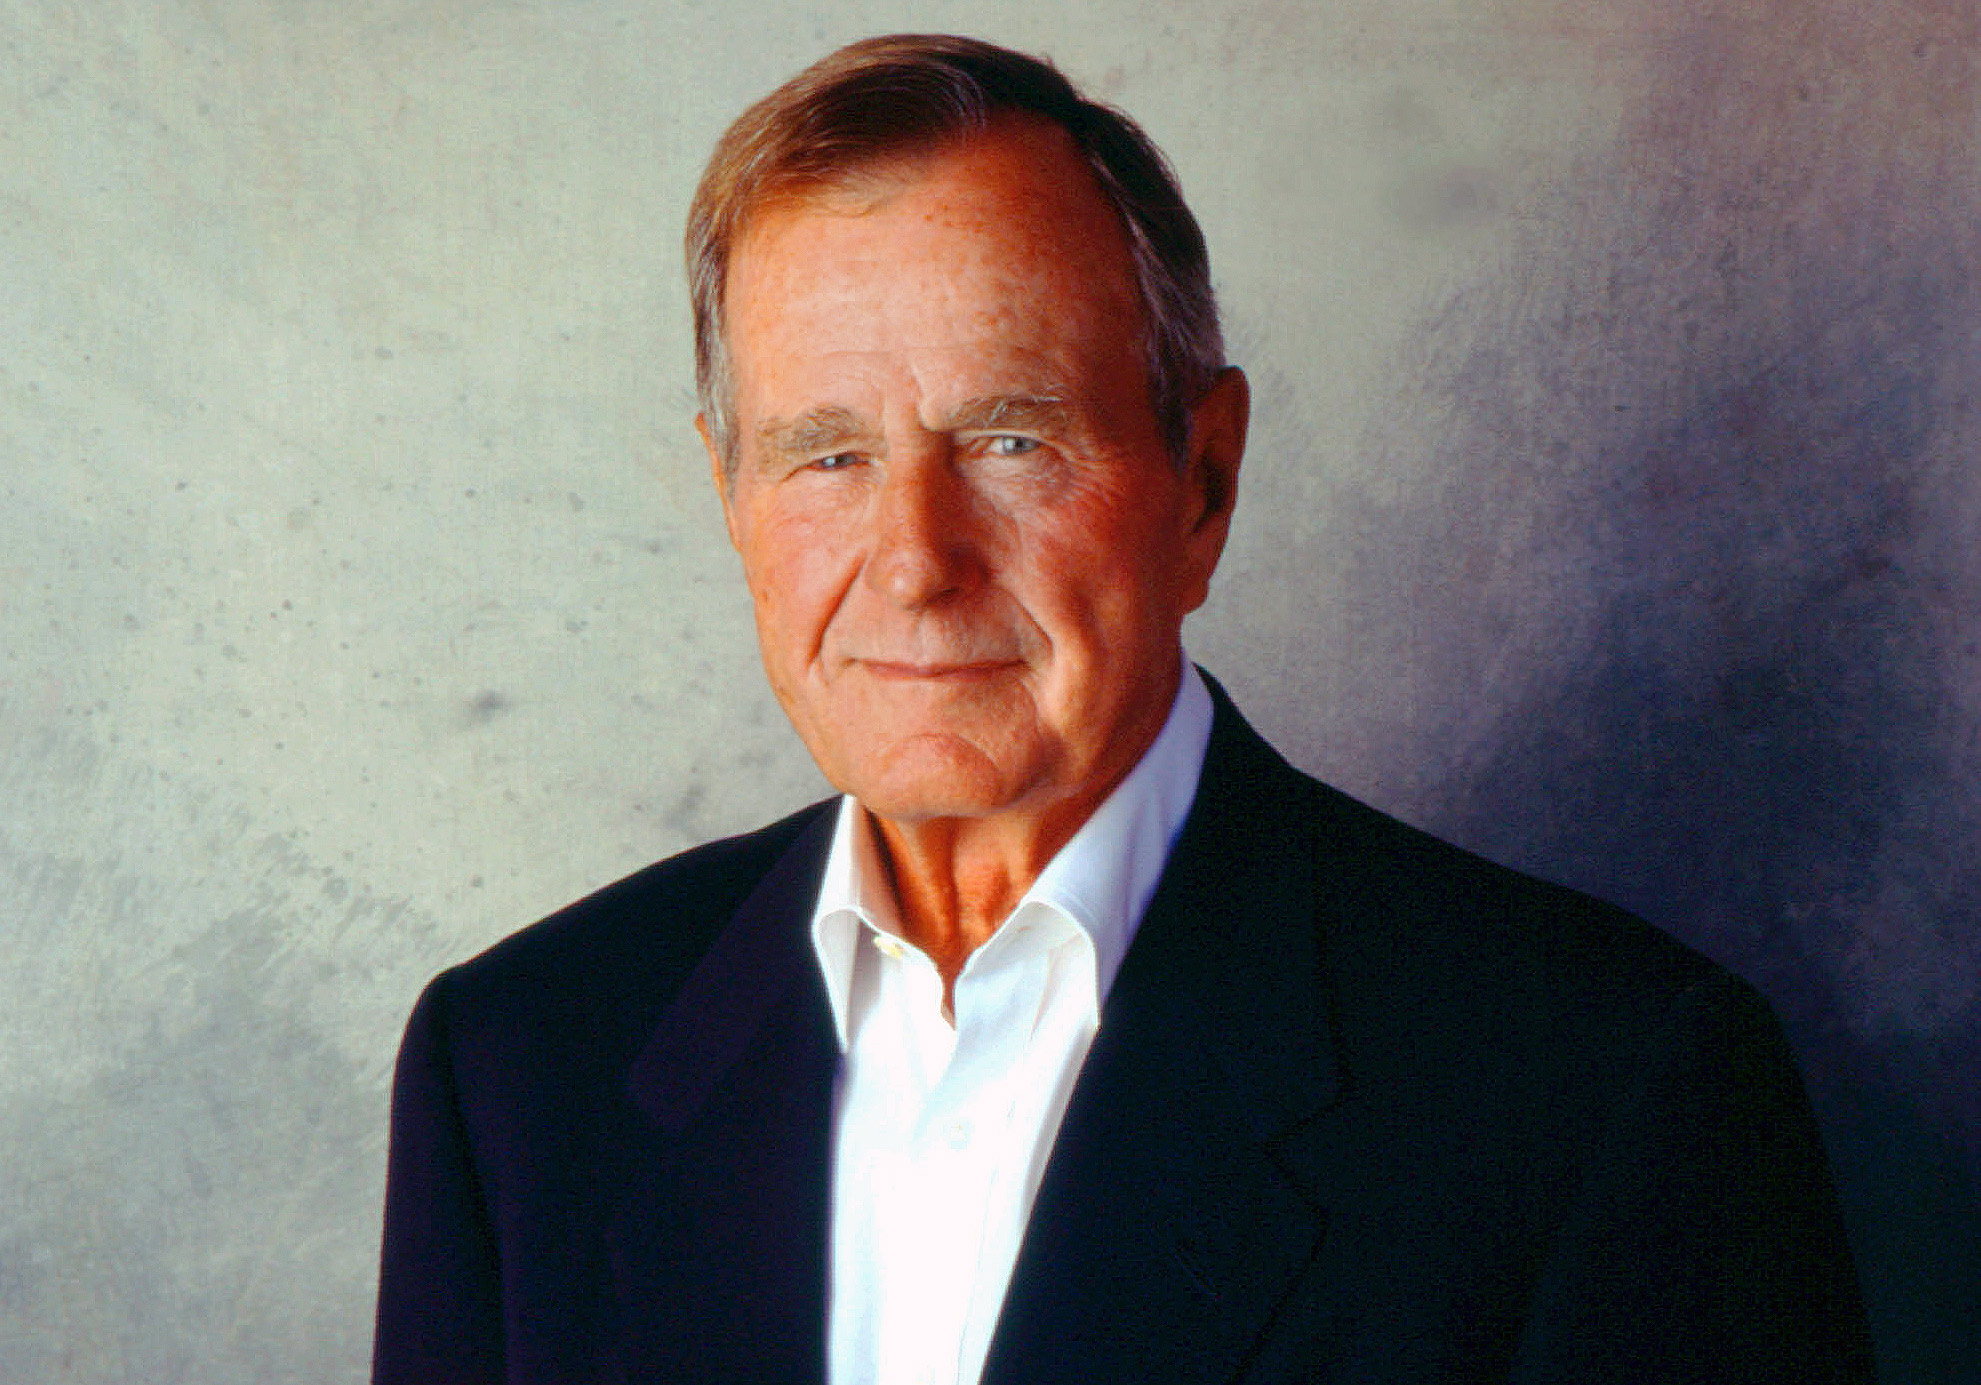 BONUS EPISODE:  A Tribute to President George H.W. Bush